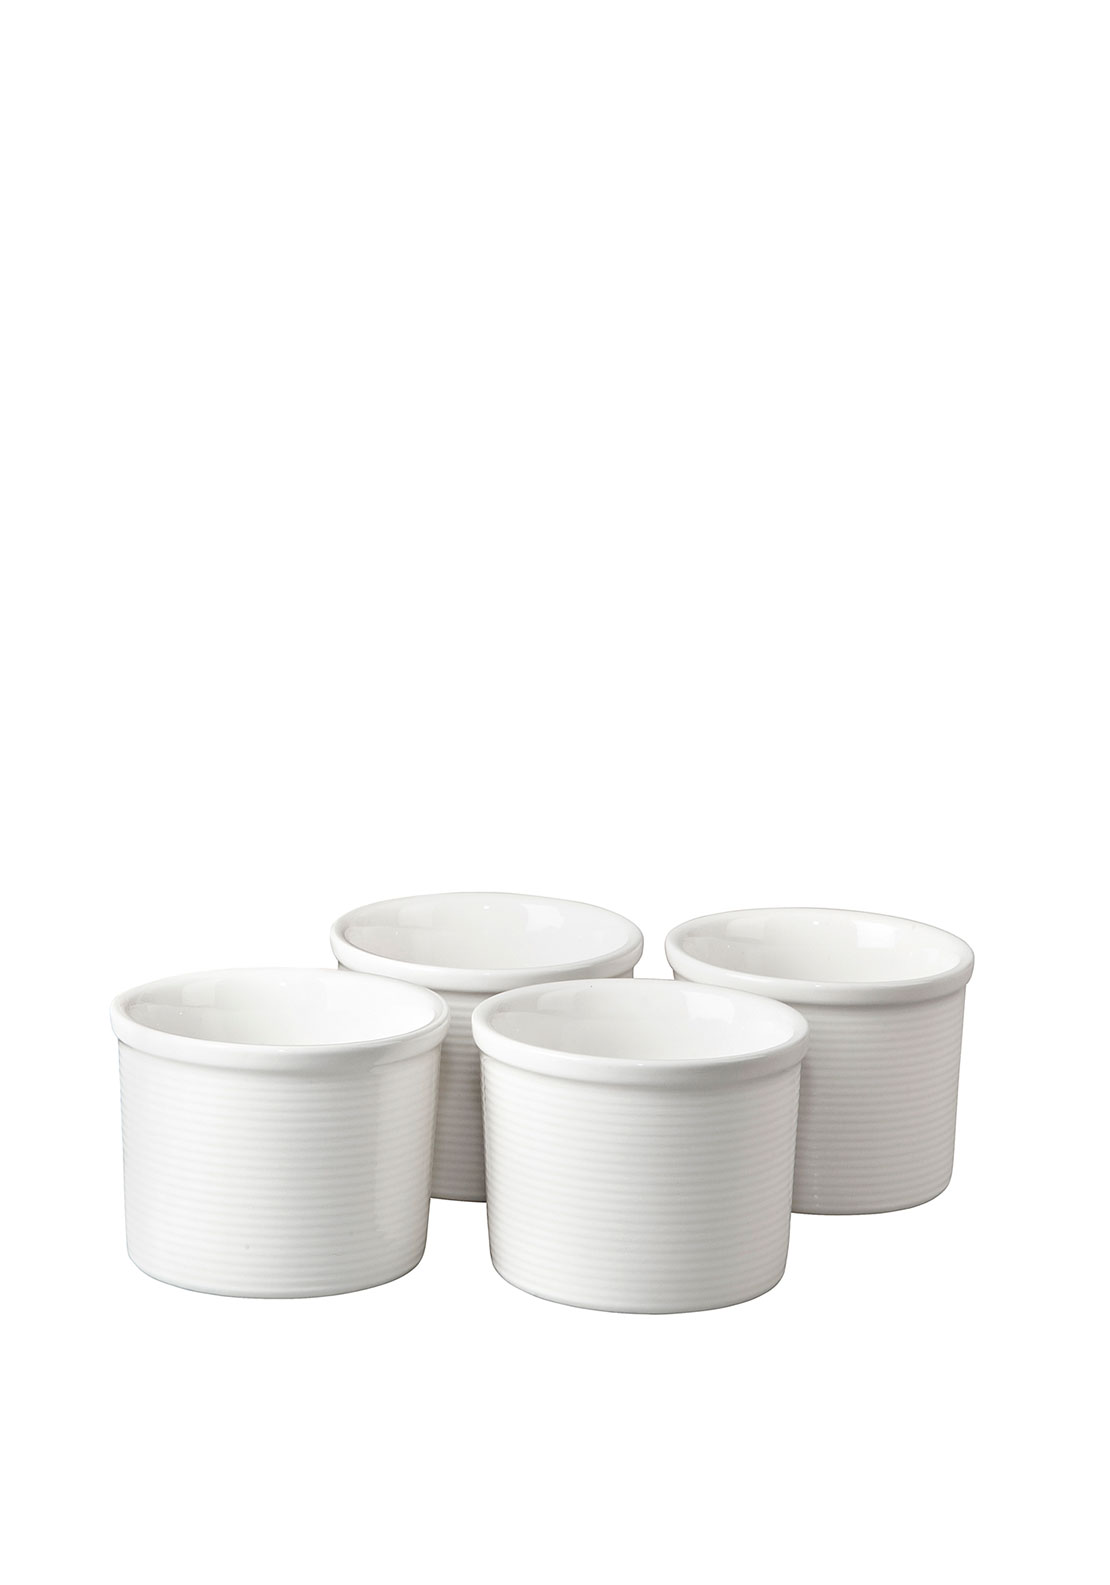 Denby Gastro James Martin 4 Piece Ramekin Kit